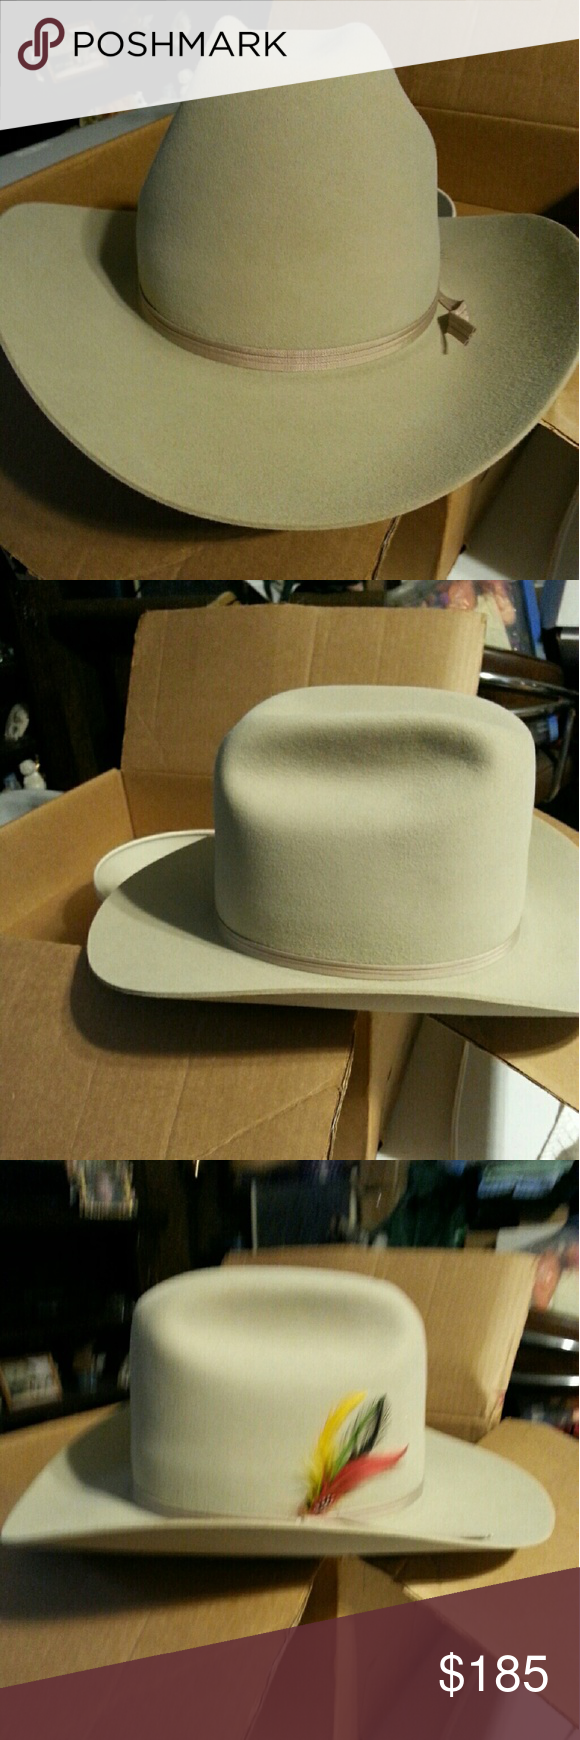 62e77a73769ef Vintage Stetson Cowboy Hat.. New.. Never worn. Mint condition. Size ...